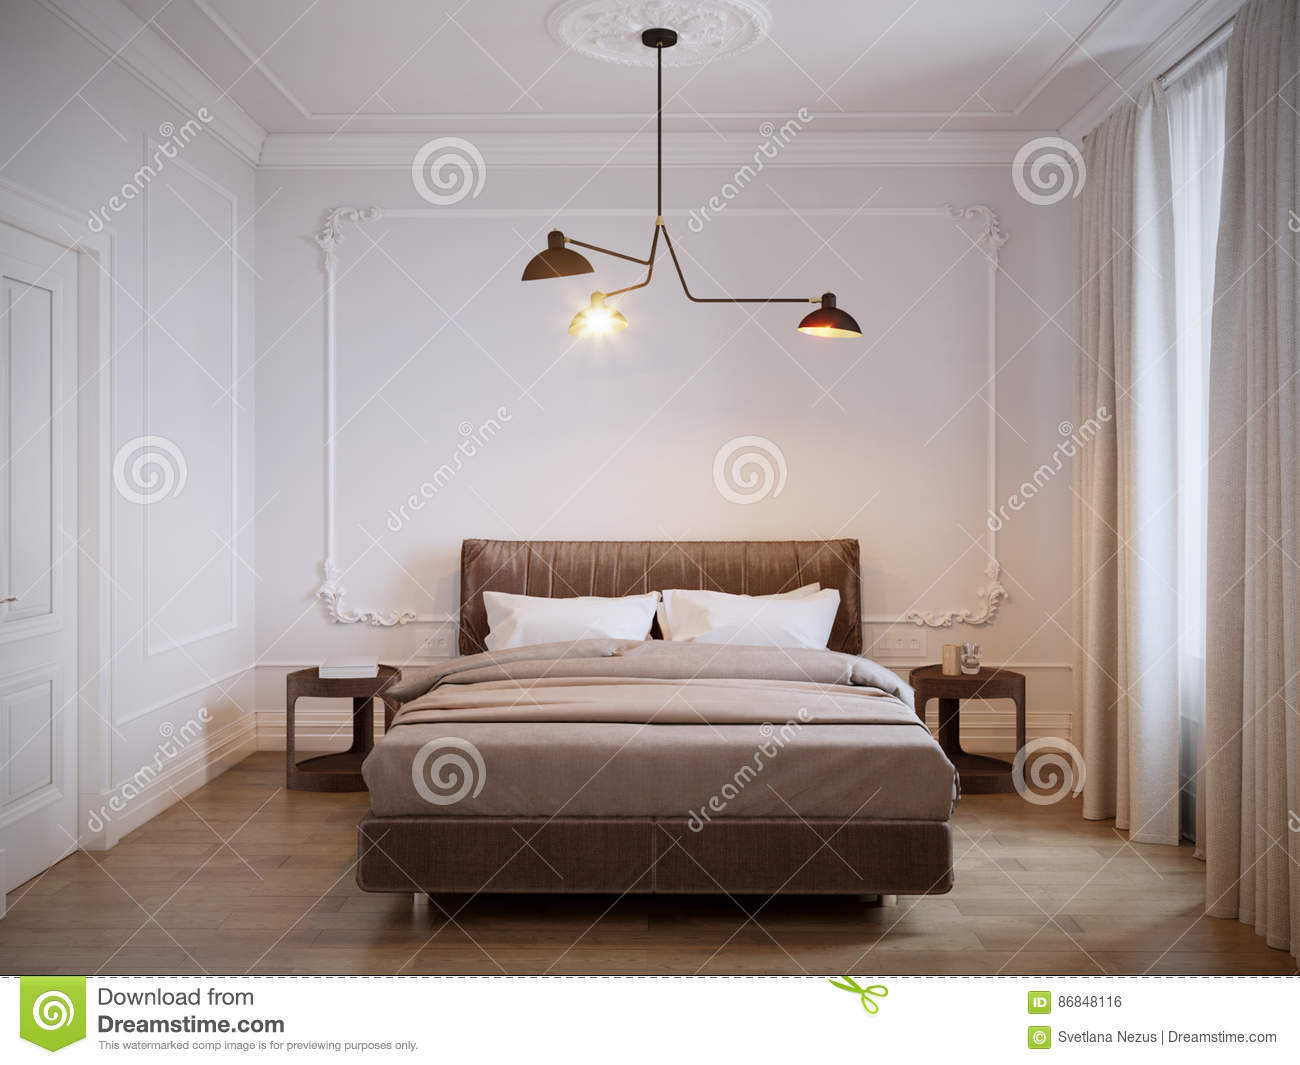 Interior Design Camera Da Letto.Bright And Cozy Modern Bedroom Interior Design With White Walls